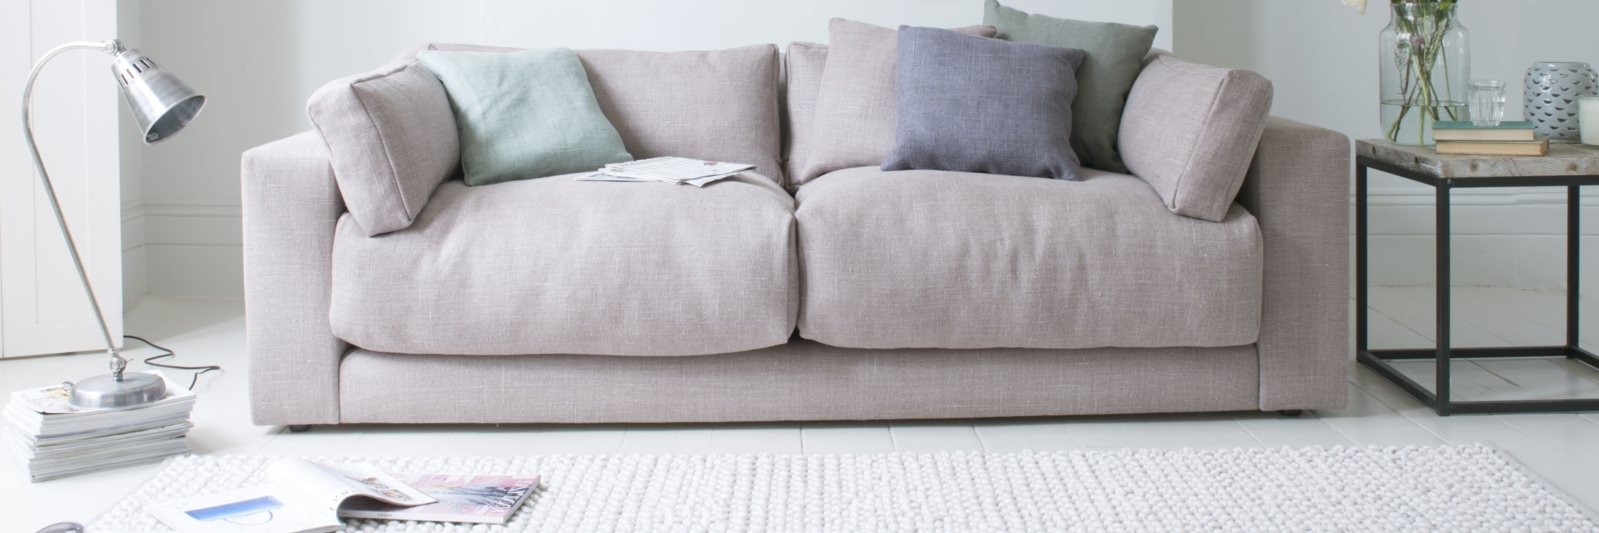 Sofas With Removable Arms | Loaf Intended For Sofas With Removable Cover (View 7 of 10)